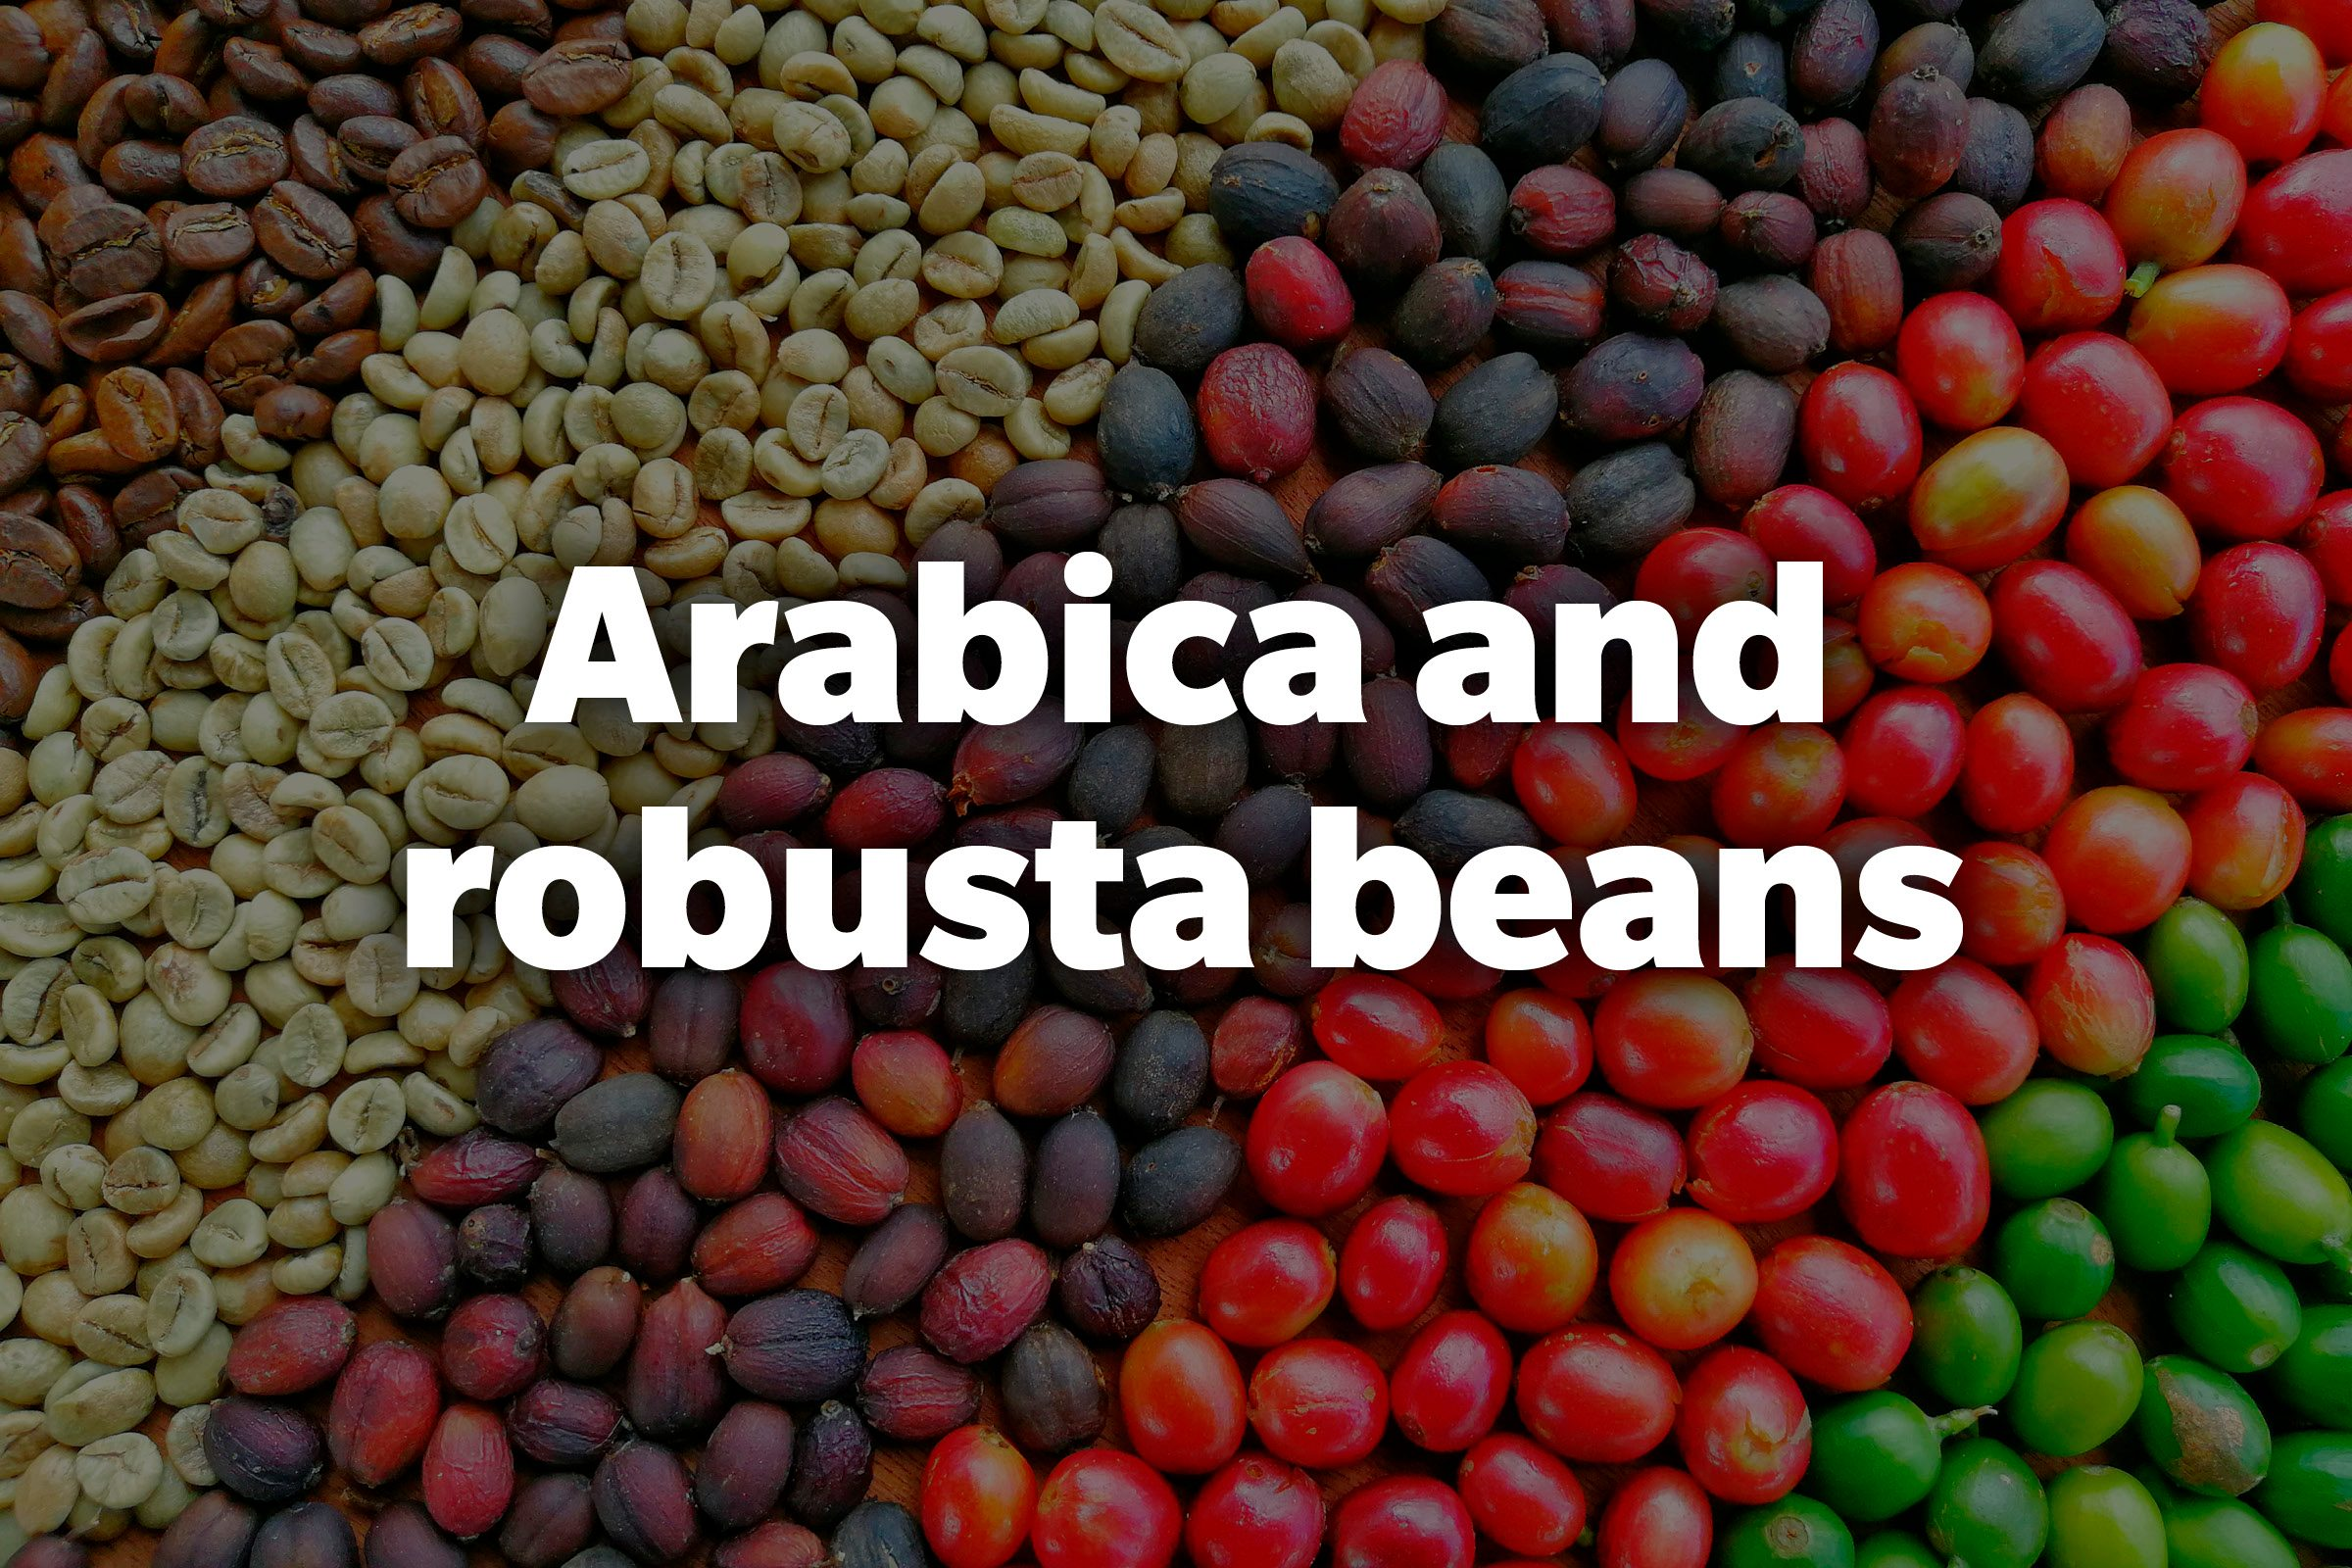 Arabica and robusta beans